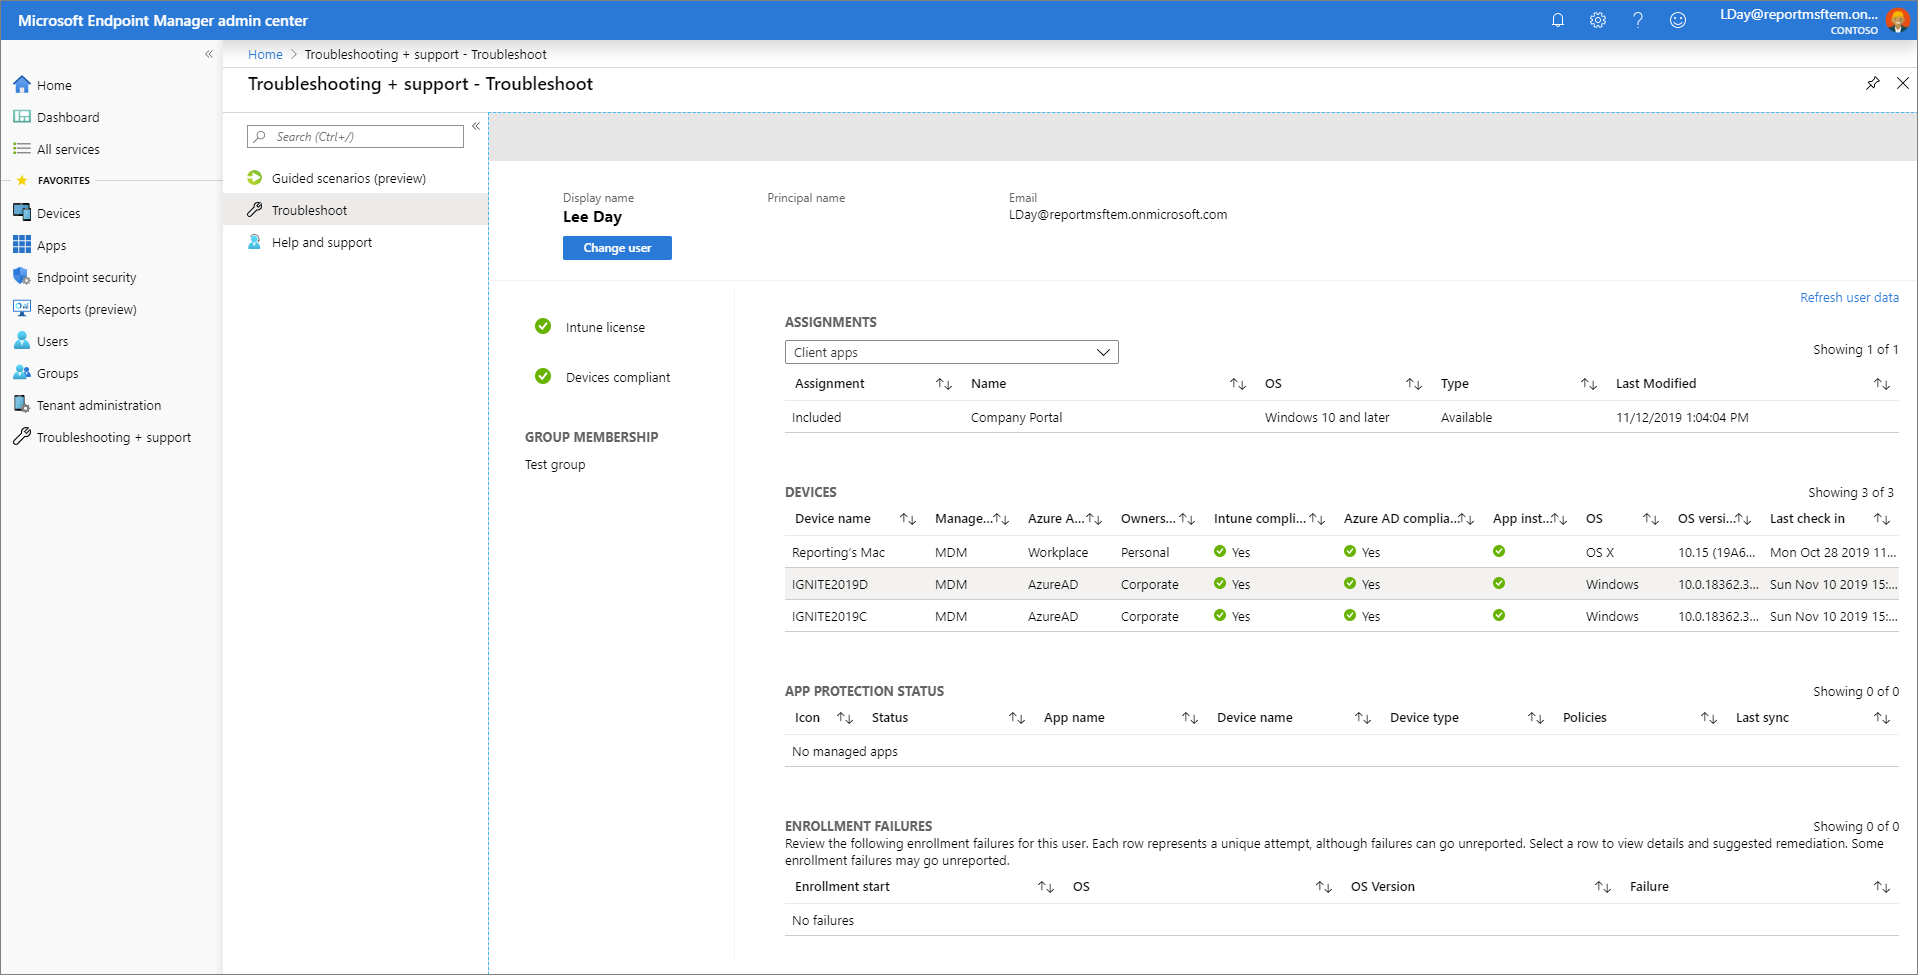 Screenshot of the Microsoft Endpoint Manager admin center - Troubleshoot